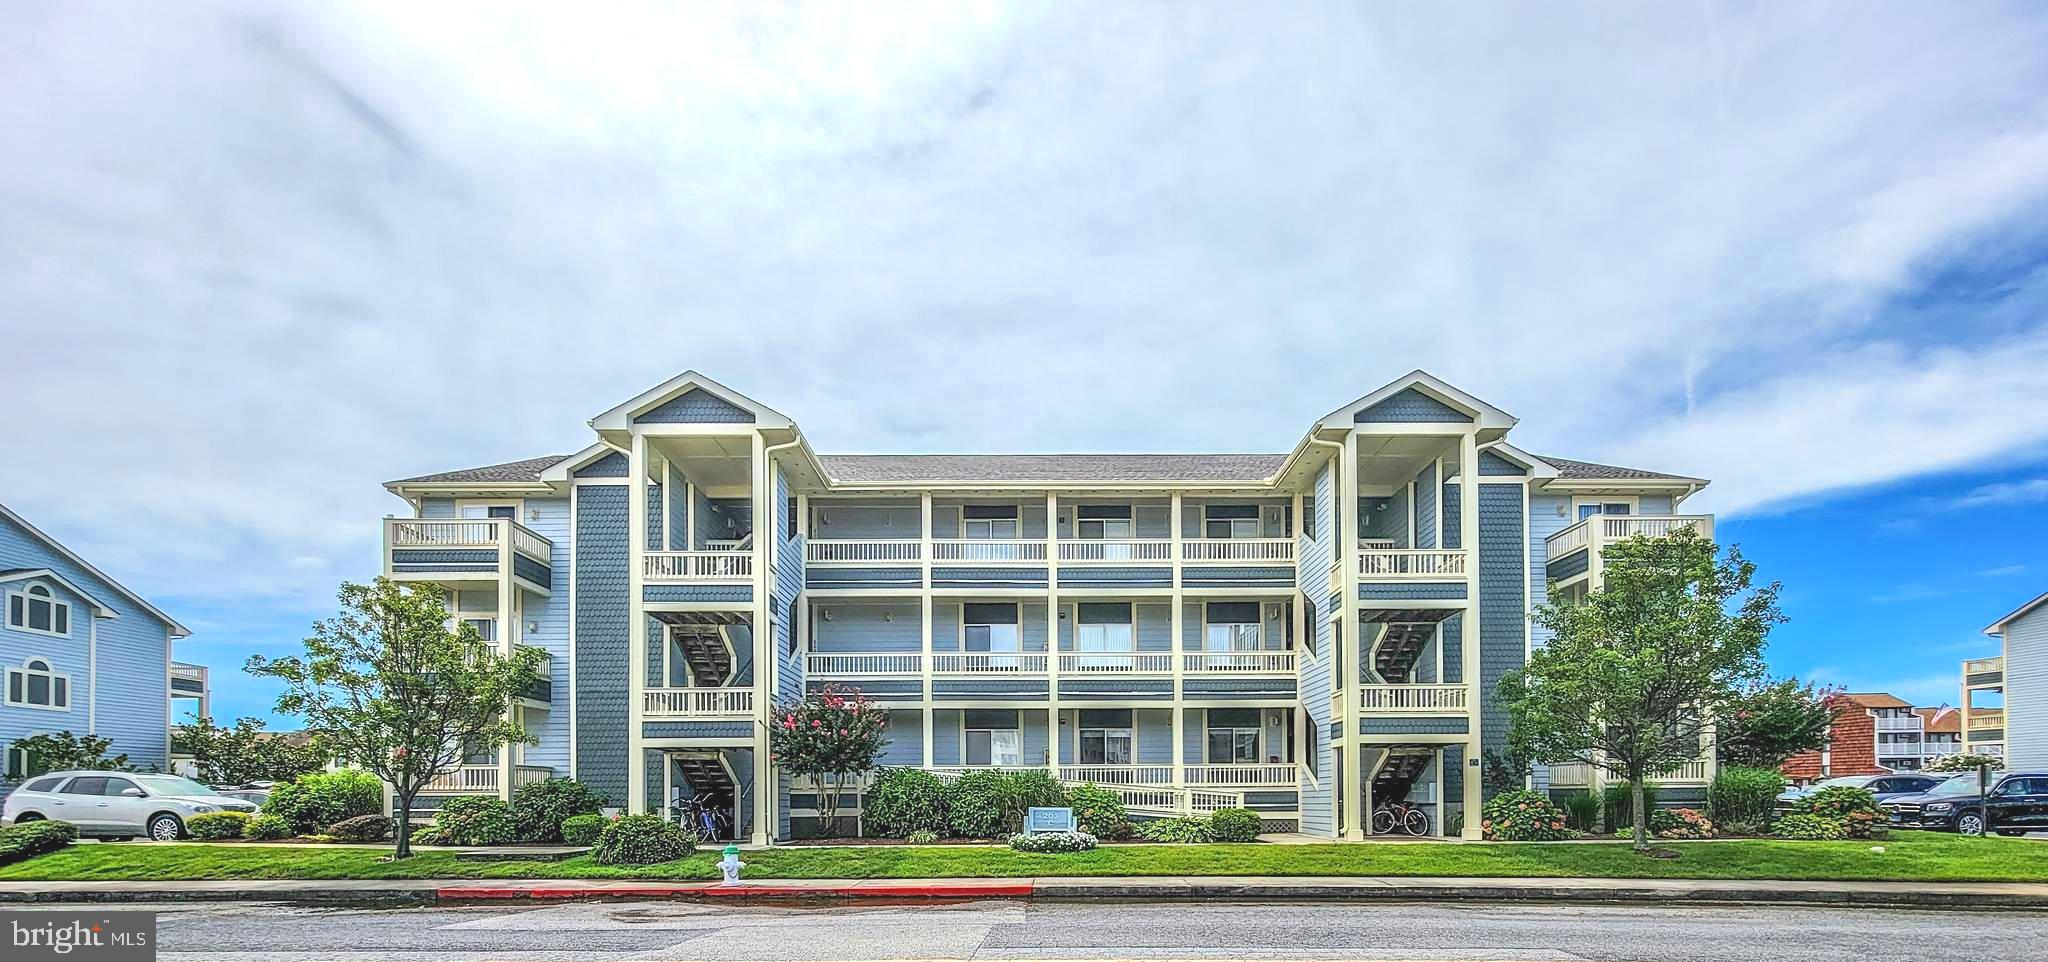 If you're looking for a well maintained, pristine, WATERFRONT condo, this is it!! This gorgeous, Coa